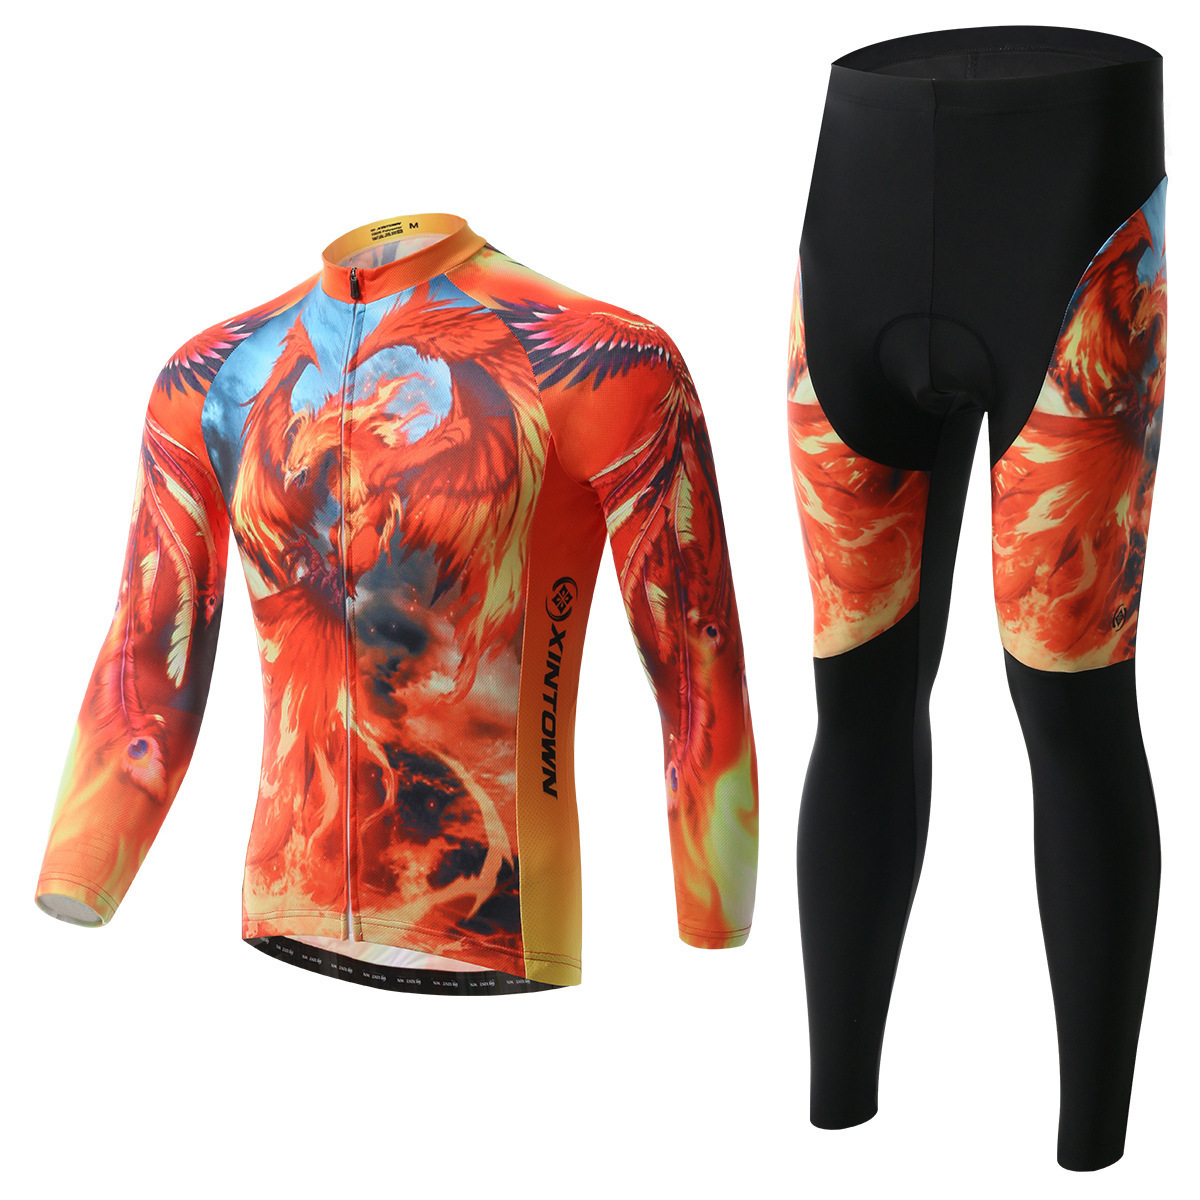 XINTOWN Spring Autumn Cycling Jersey Set Long Sleeve 3d Gel Padded Sets Bike Clothing MTB Protective Wear Cycling Cycle Clothes wosawe men s long sleeve cycling jersey sets breathable gel padded mtb tights sportswear for all season cycling clothings